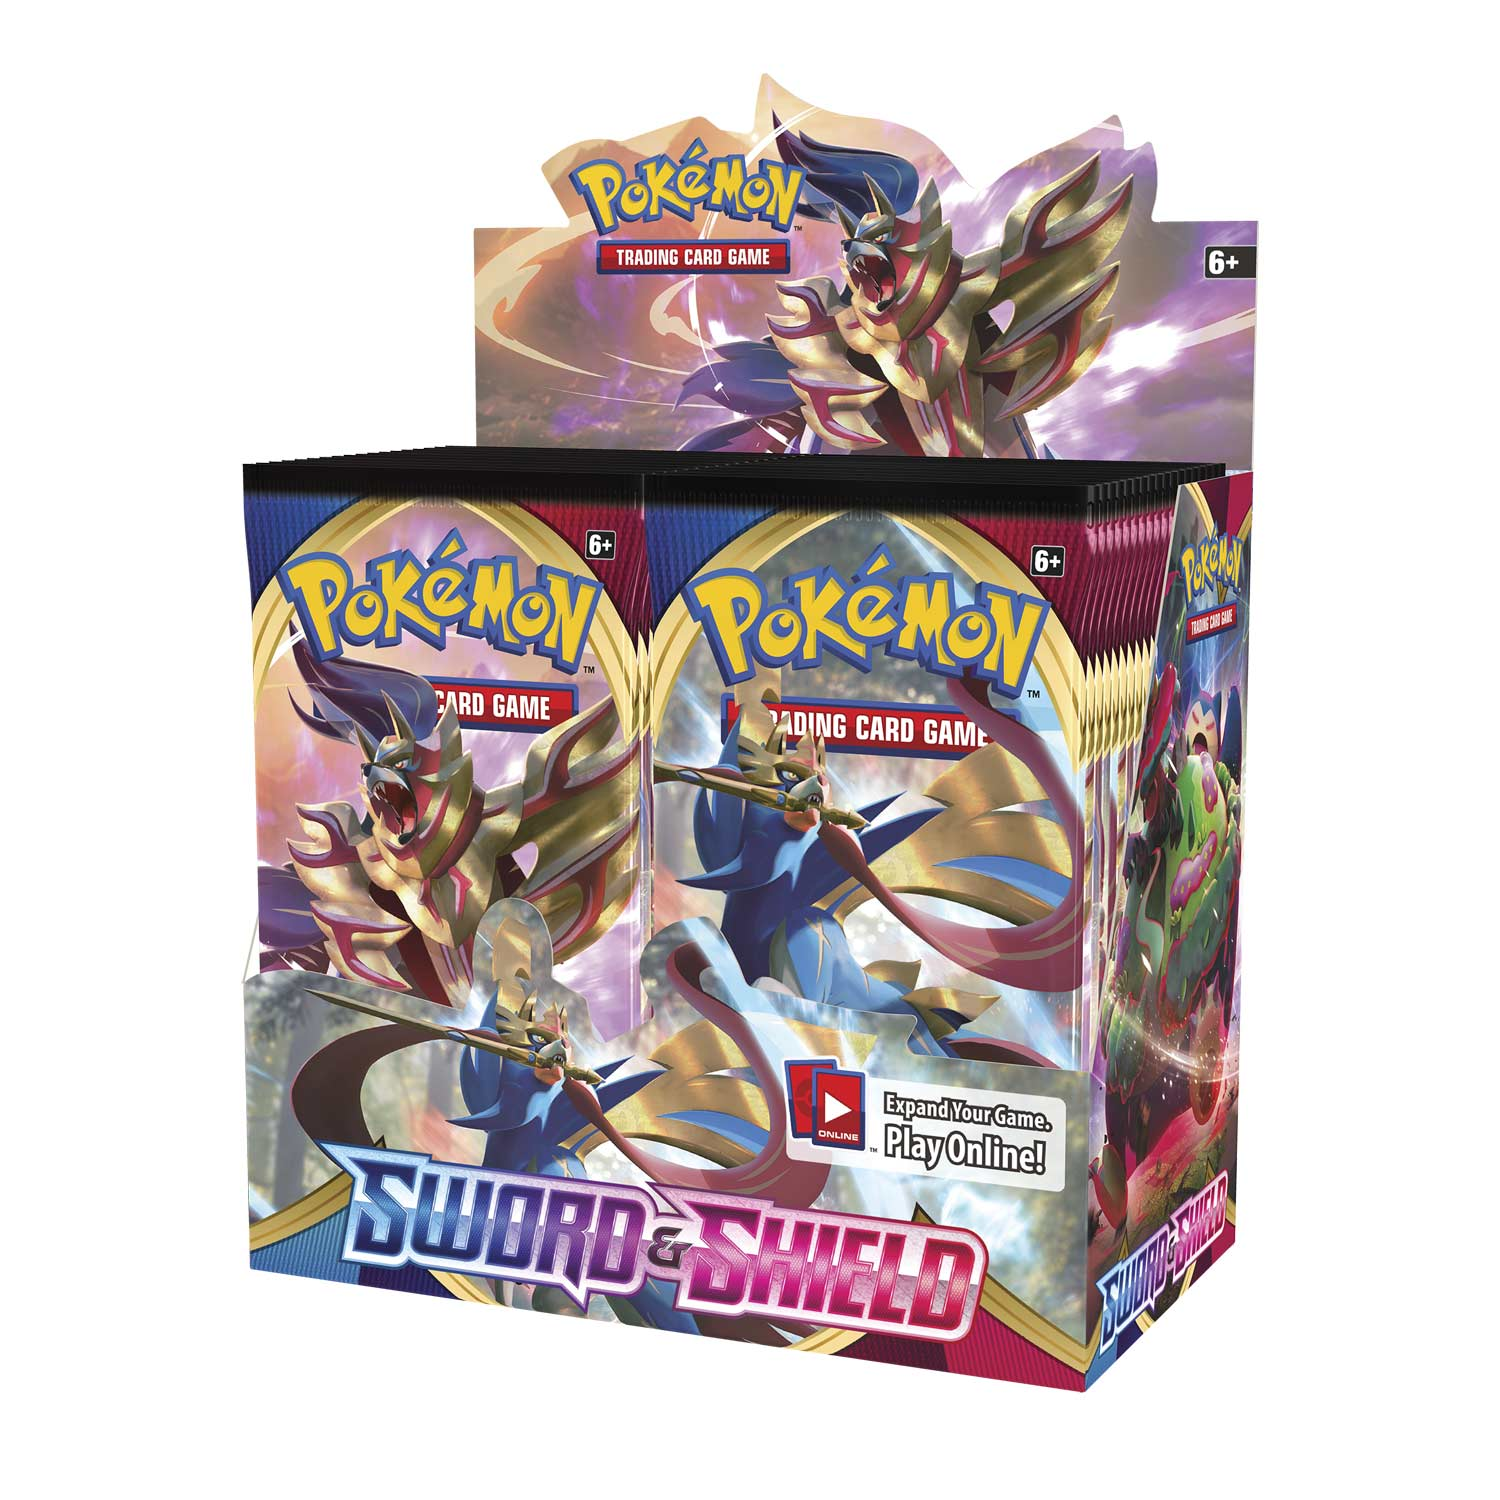 Pokémon TCG Sword & Shield Booster Display